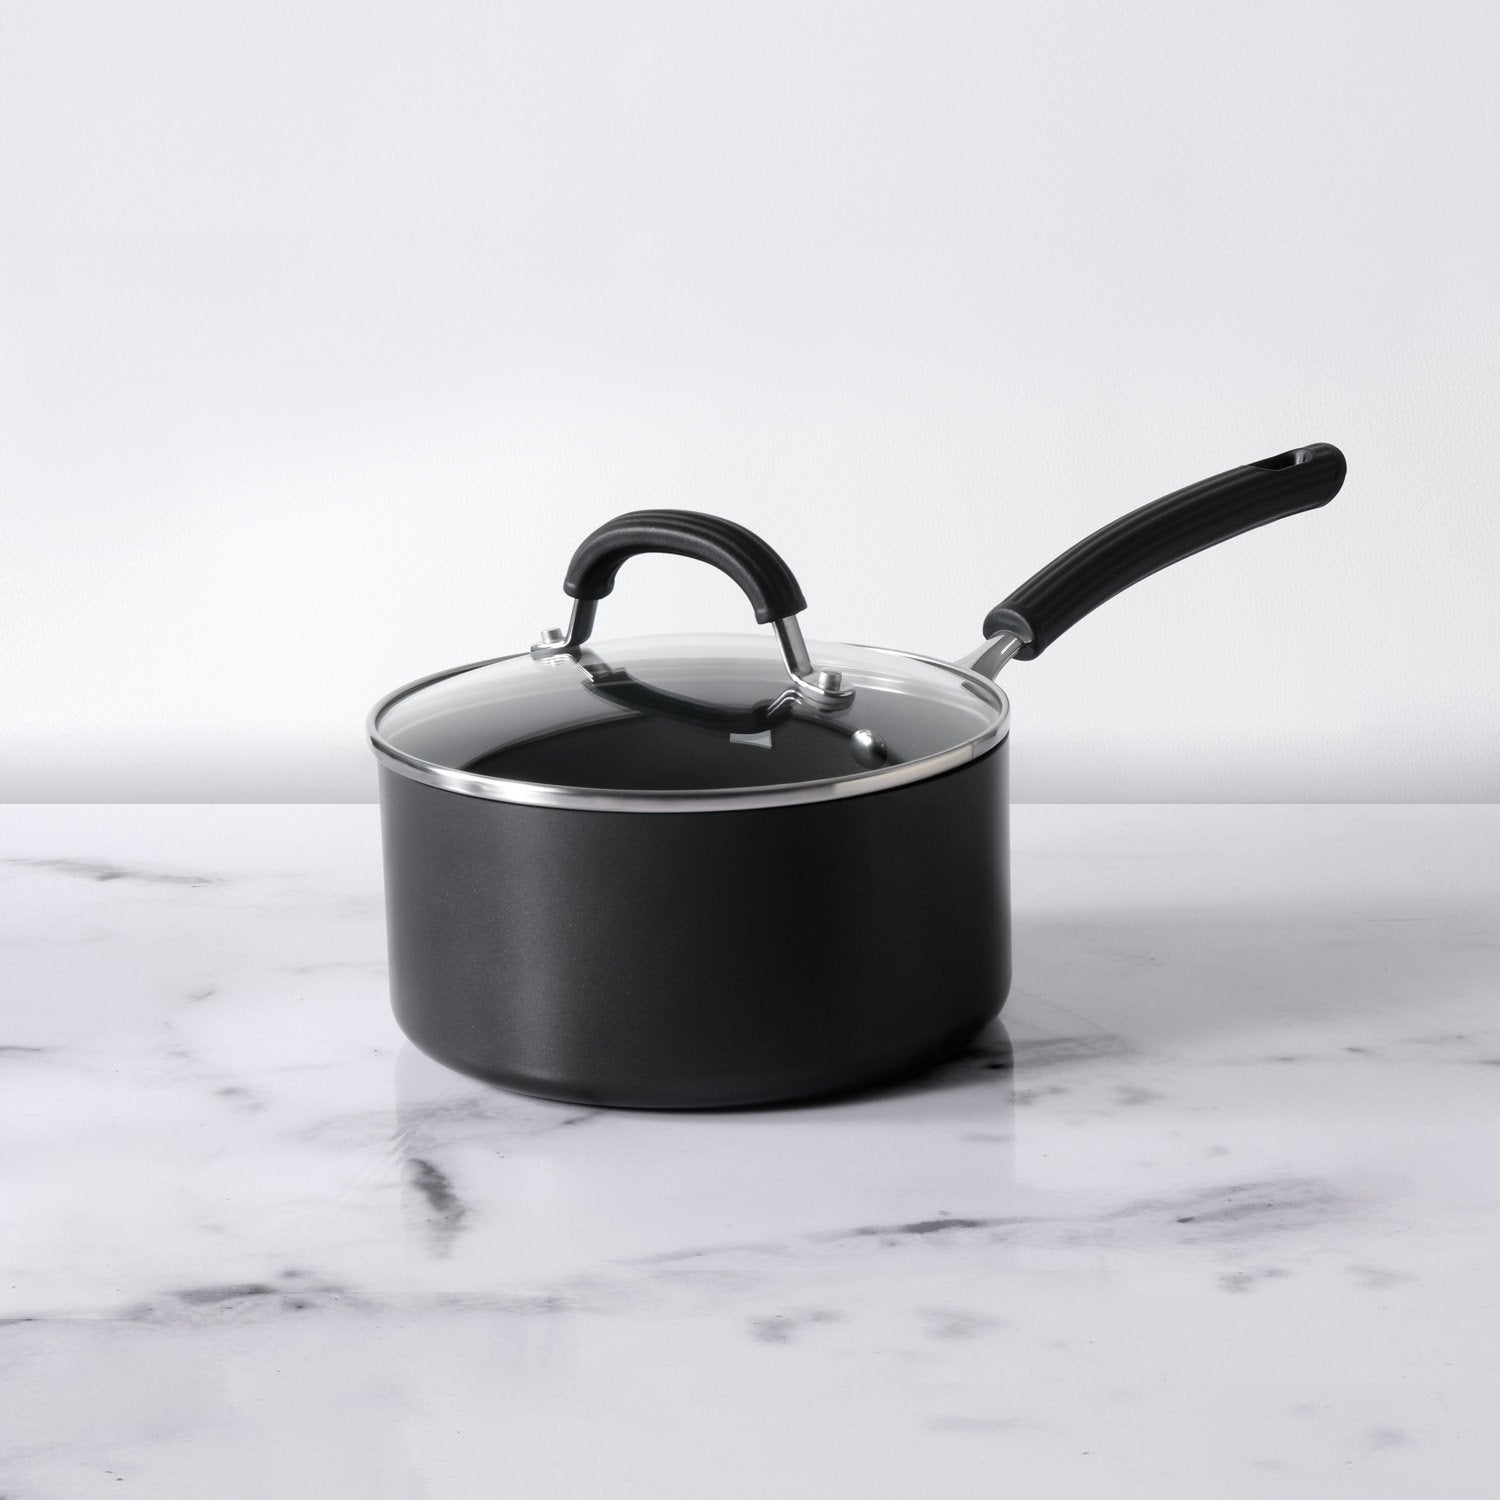 Circulon Origins Non-Stick + Hard Anodized Saucepan 18cm, Grey (Suitable For Gas & Induction) - Pots and Pans